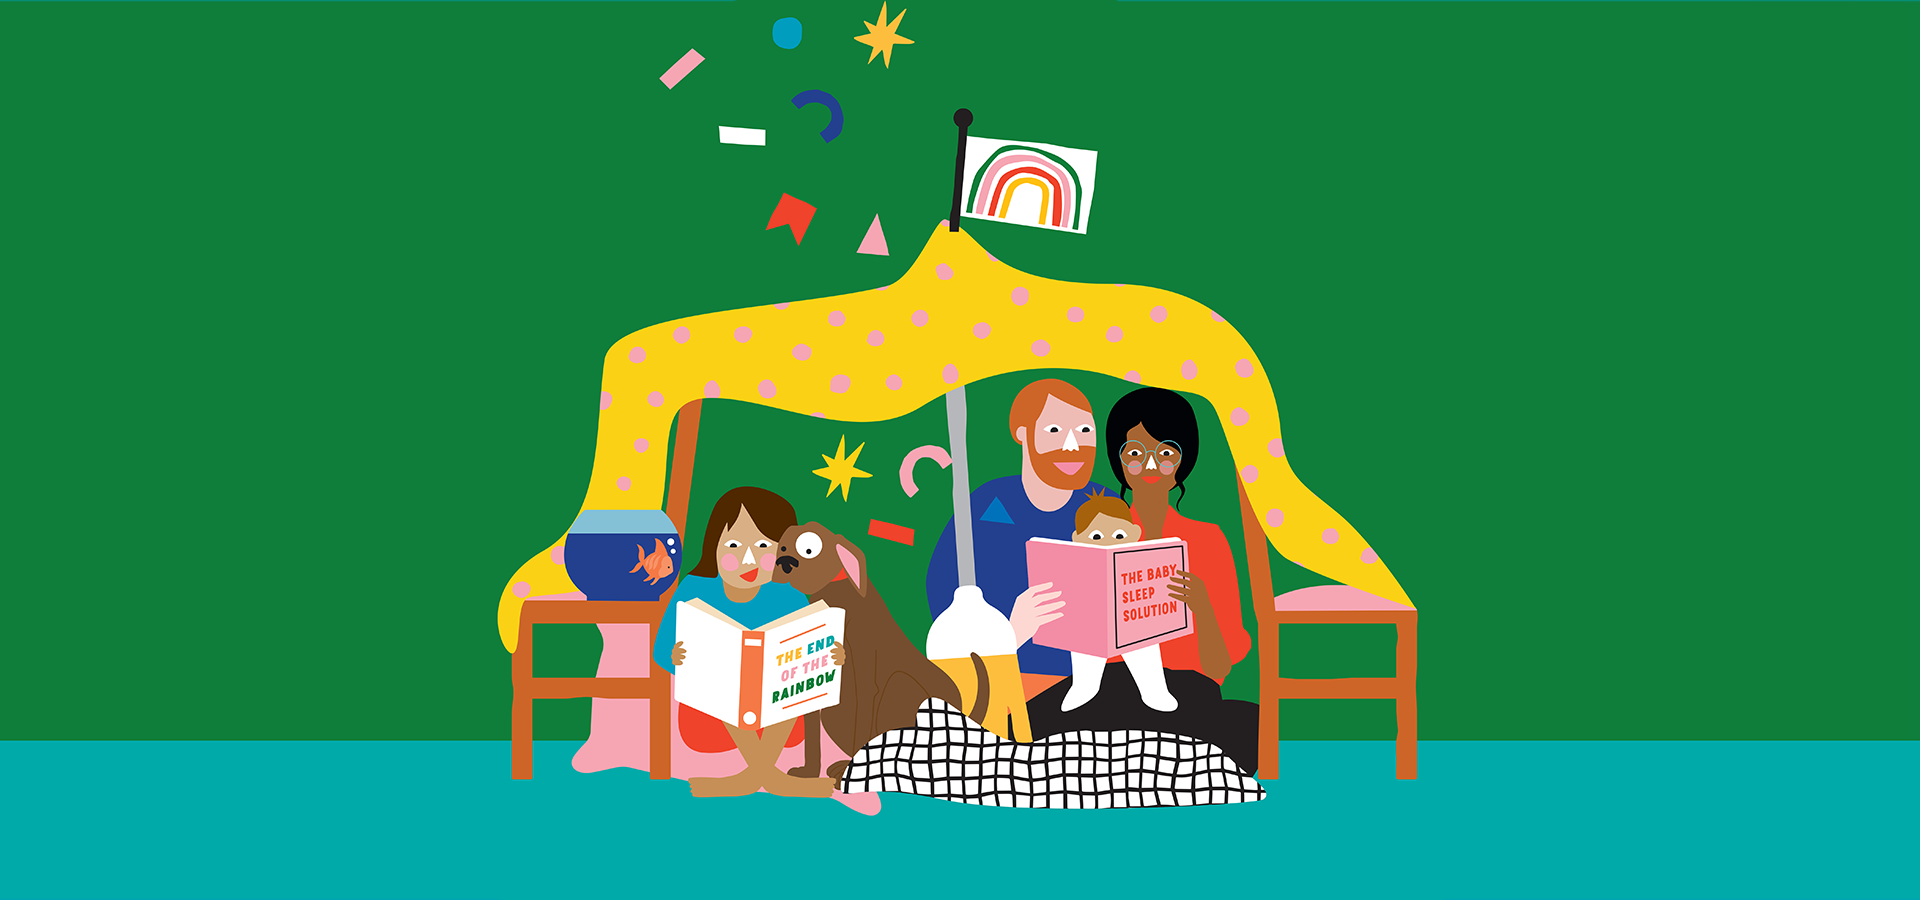 Illustration of families reading together inside a cubby house